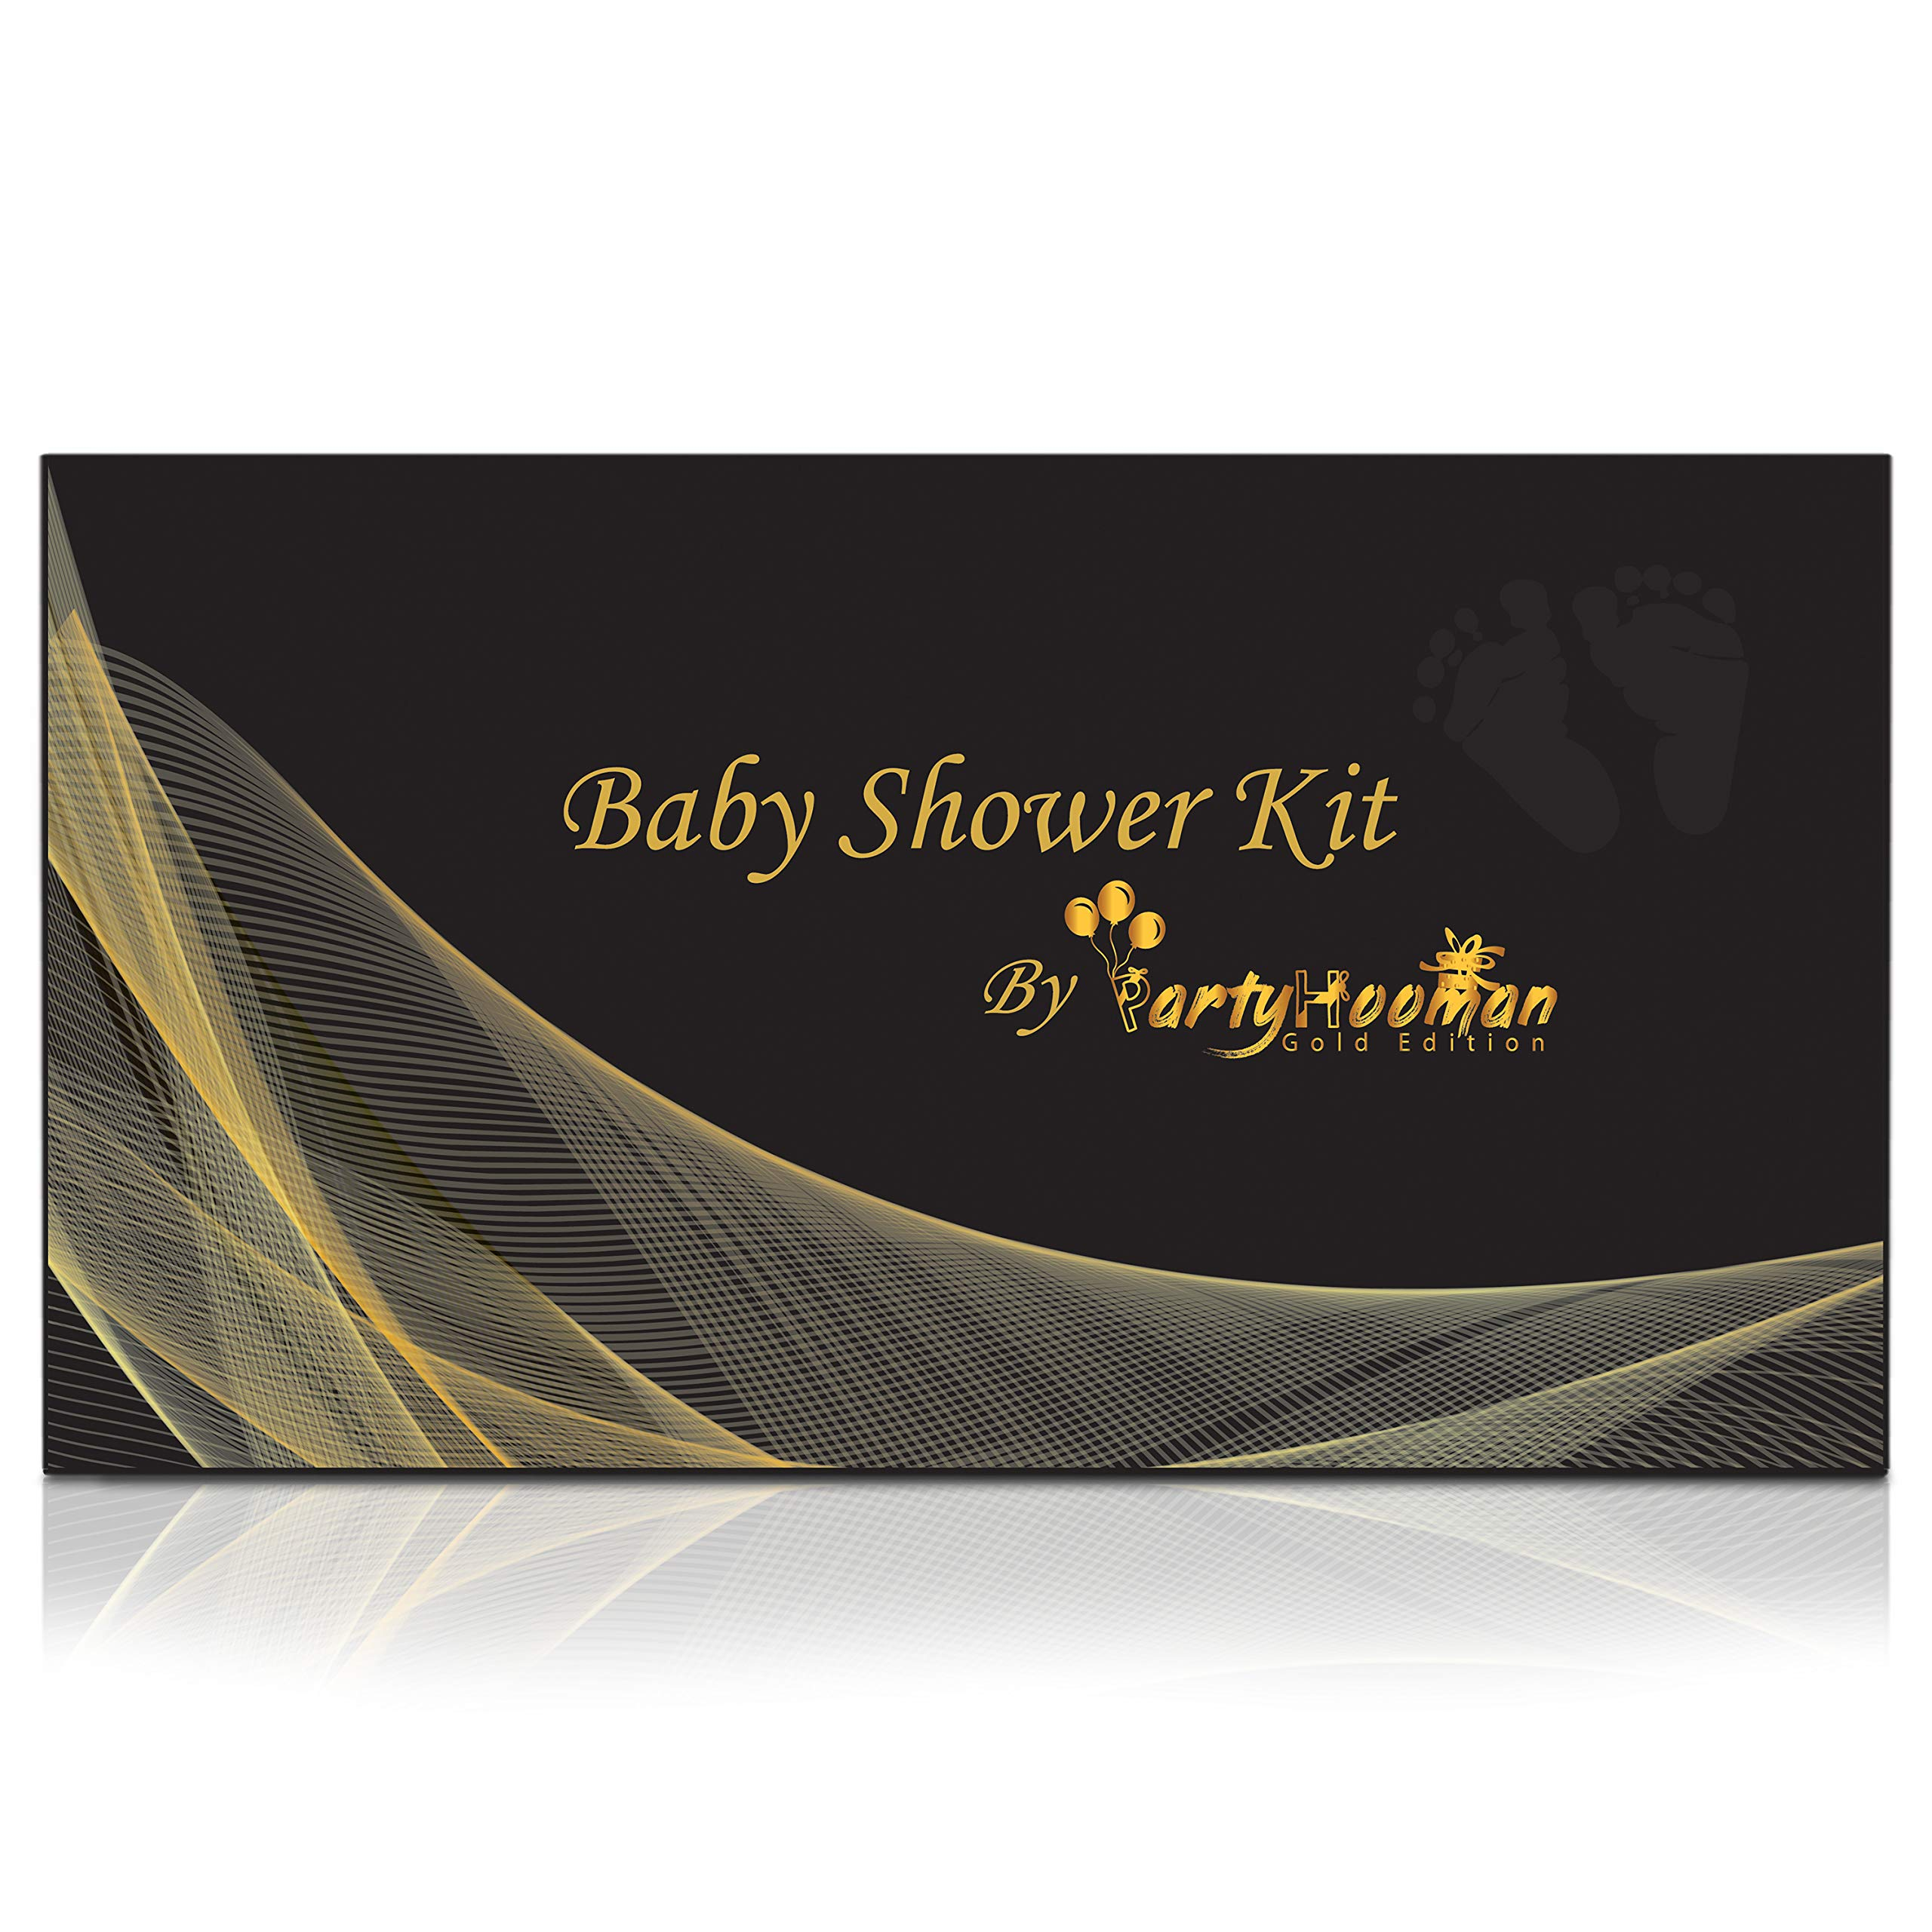 Baby Shower Decorations Kit Gold | Gender Neutral Boy or Girl | 75-in-1 Oh Baby Party Banner, Star Garland, Mom-to-Be Sash, 50 Predictions Advice Game Cards, 20 Latex Gold Balloons | PartyHooman